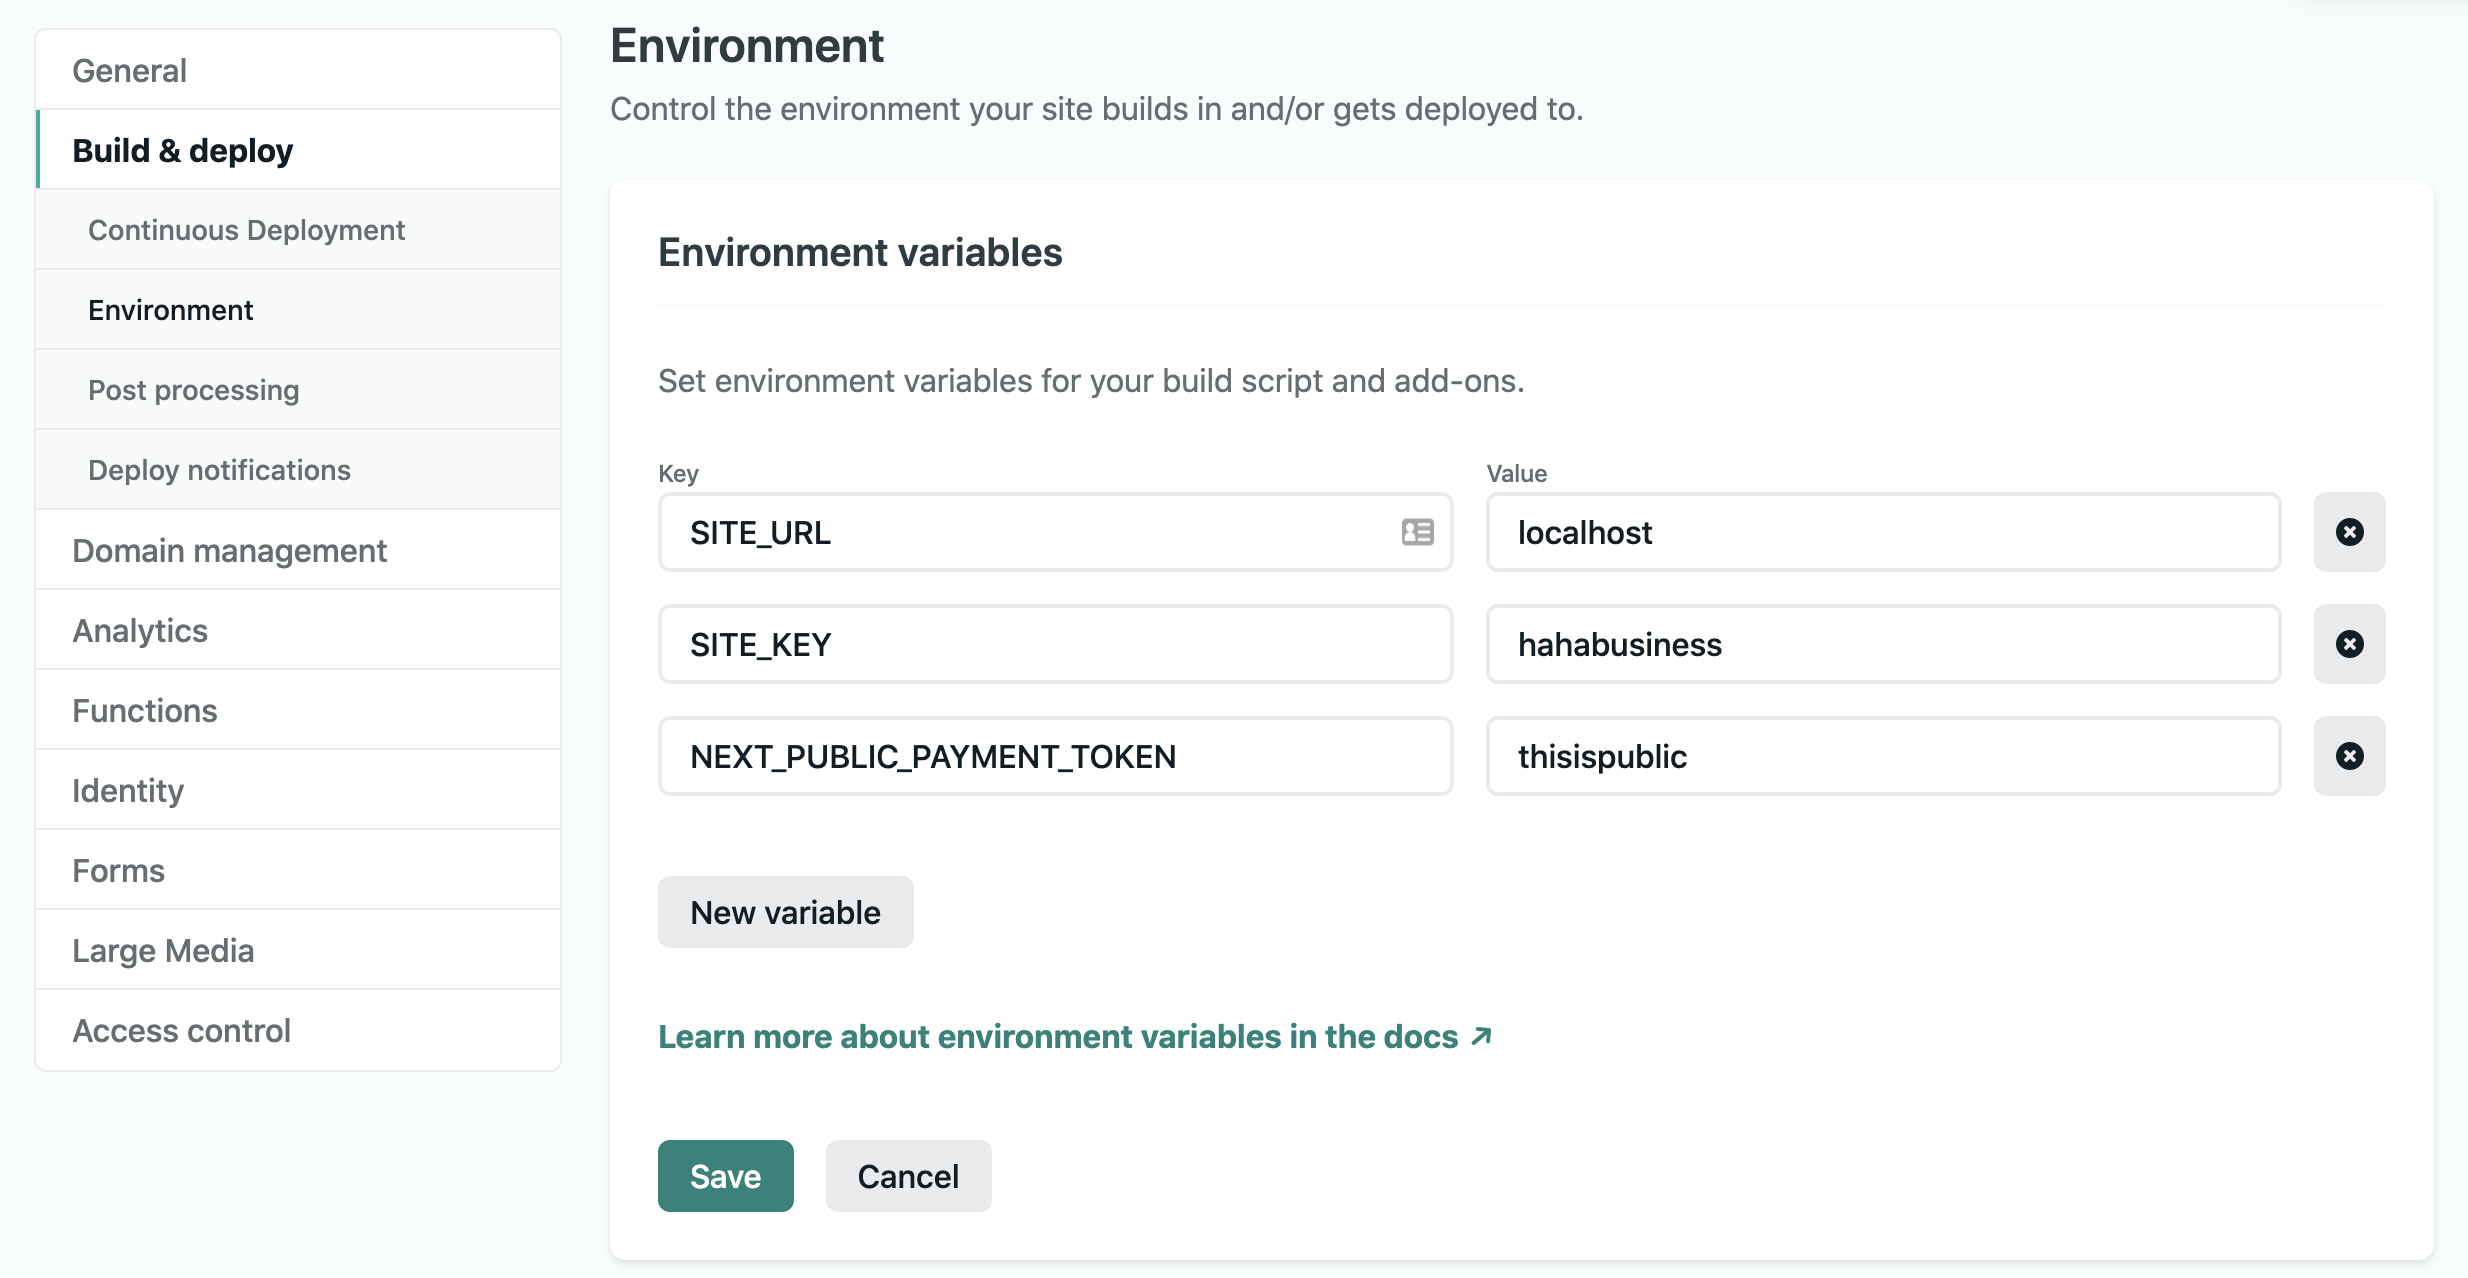 Environment Variables in the UI